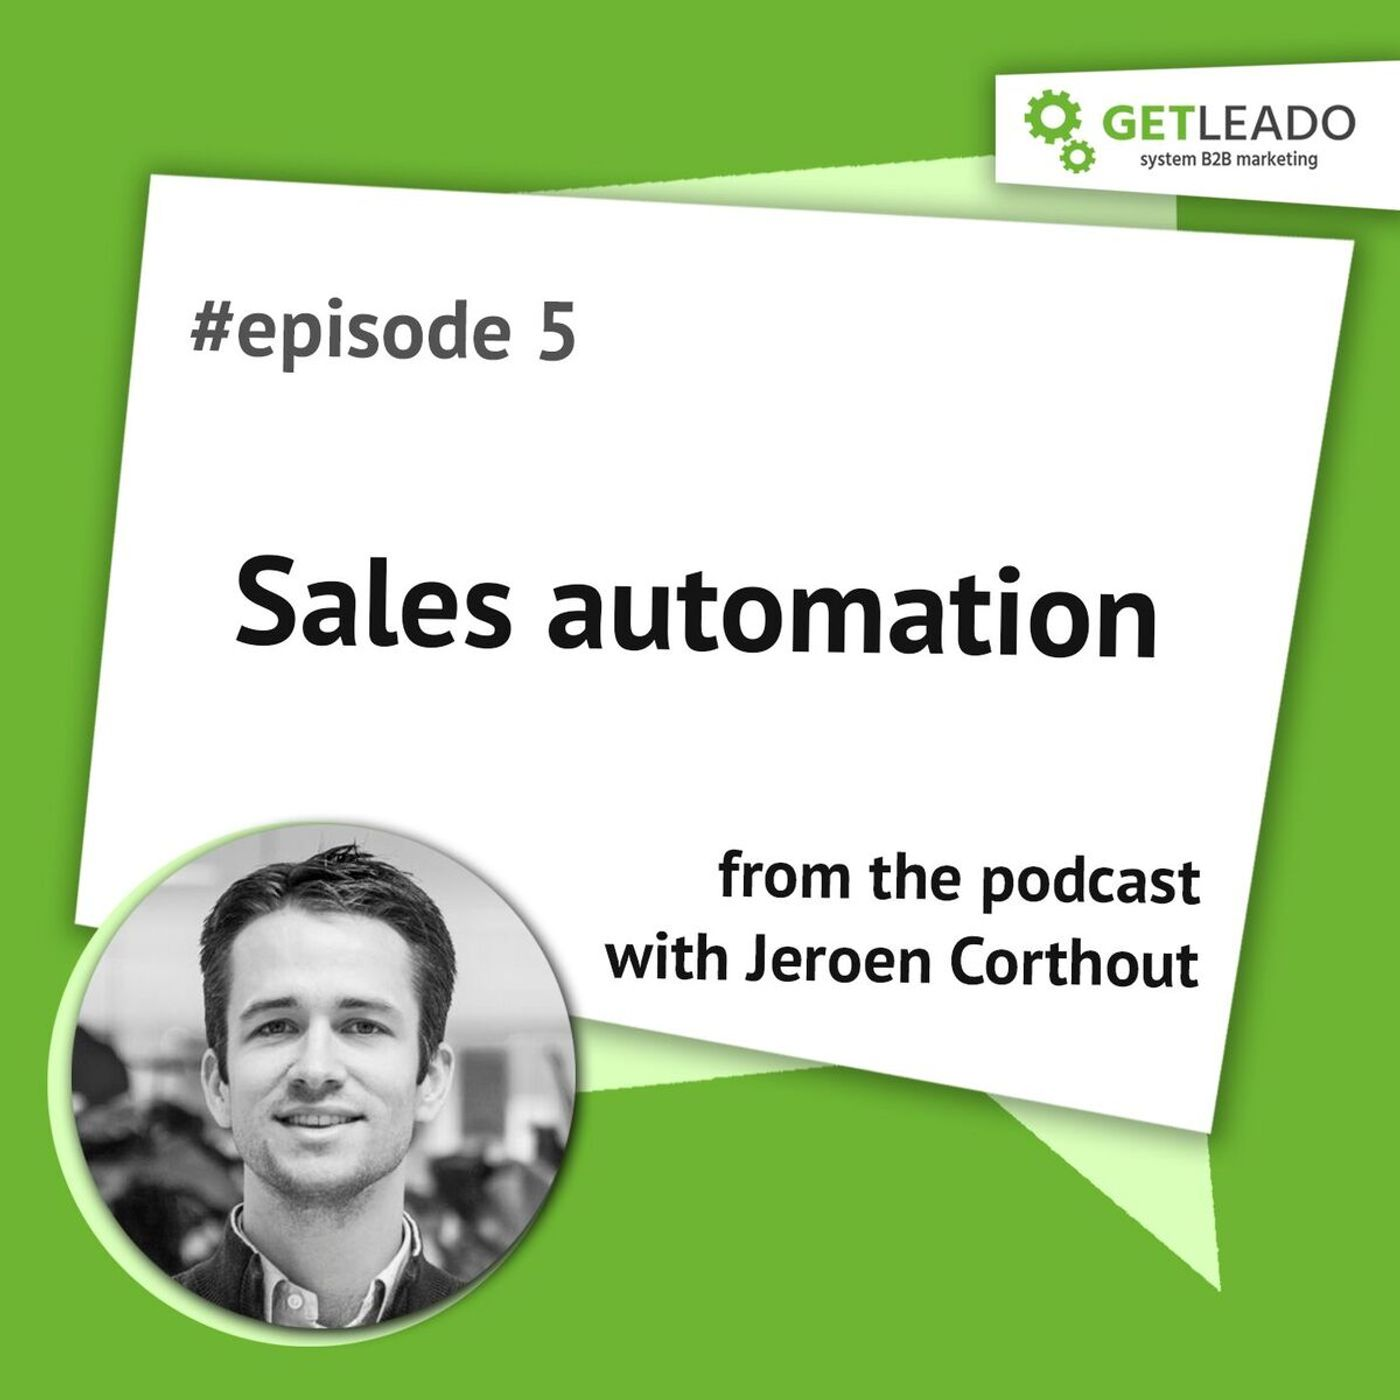 Episode 5. Sales automation with Jeroen Corthout